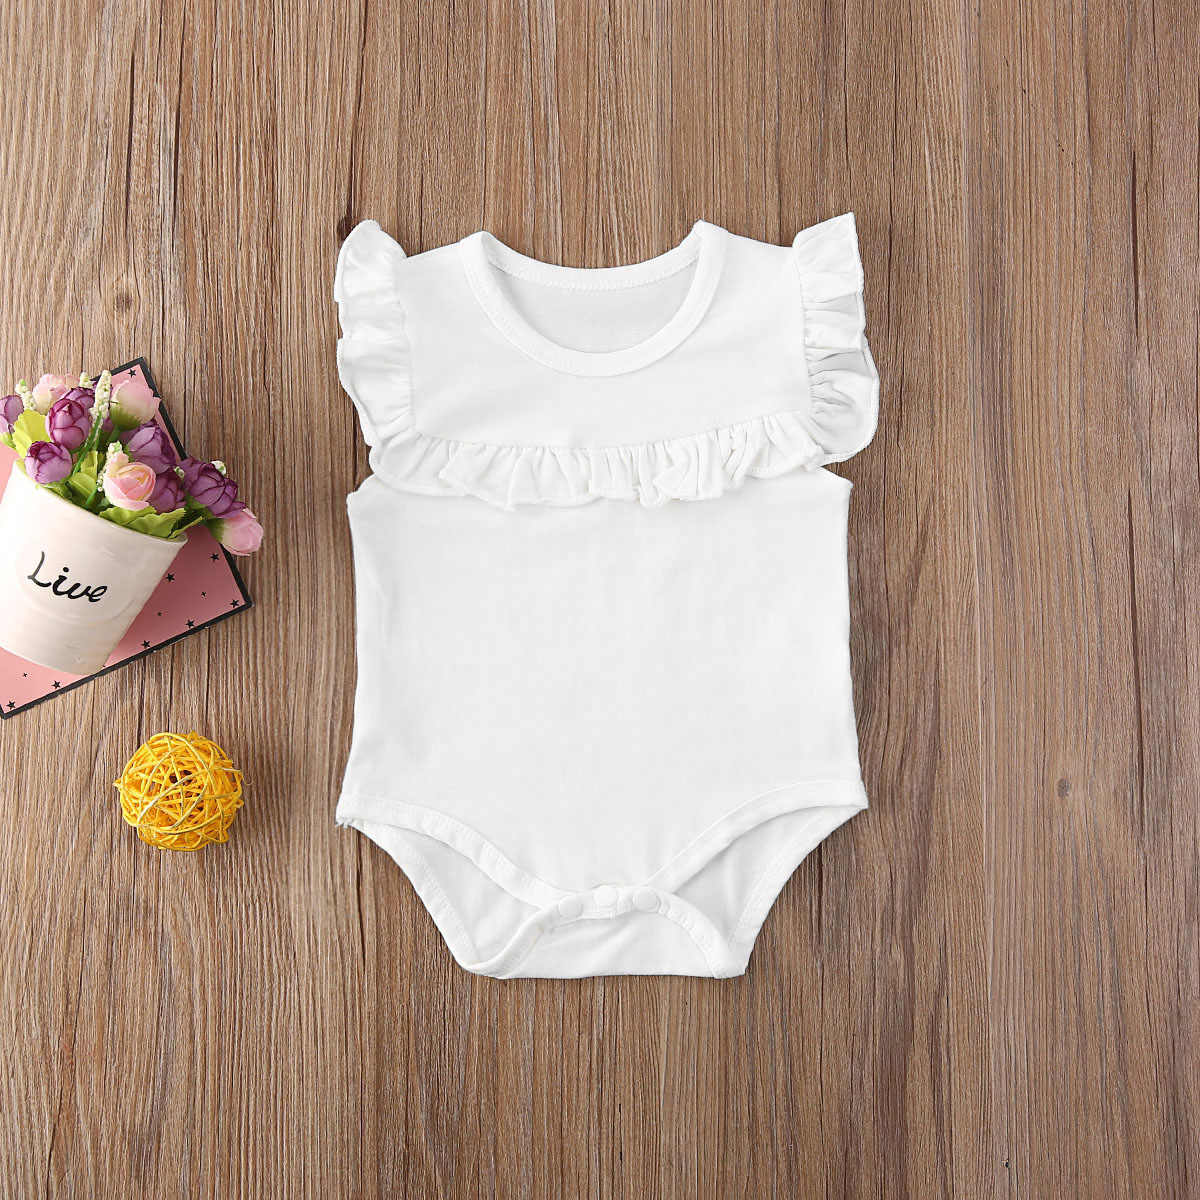 2020 Baby Summer Clothing Newborn Baby Girl Clothes Ruffled Sleeveless Bodysuit Solid Playsuit Jumpsuit Outfits Sunsuit